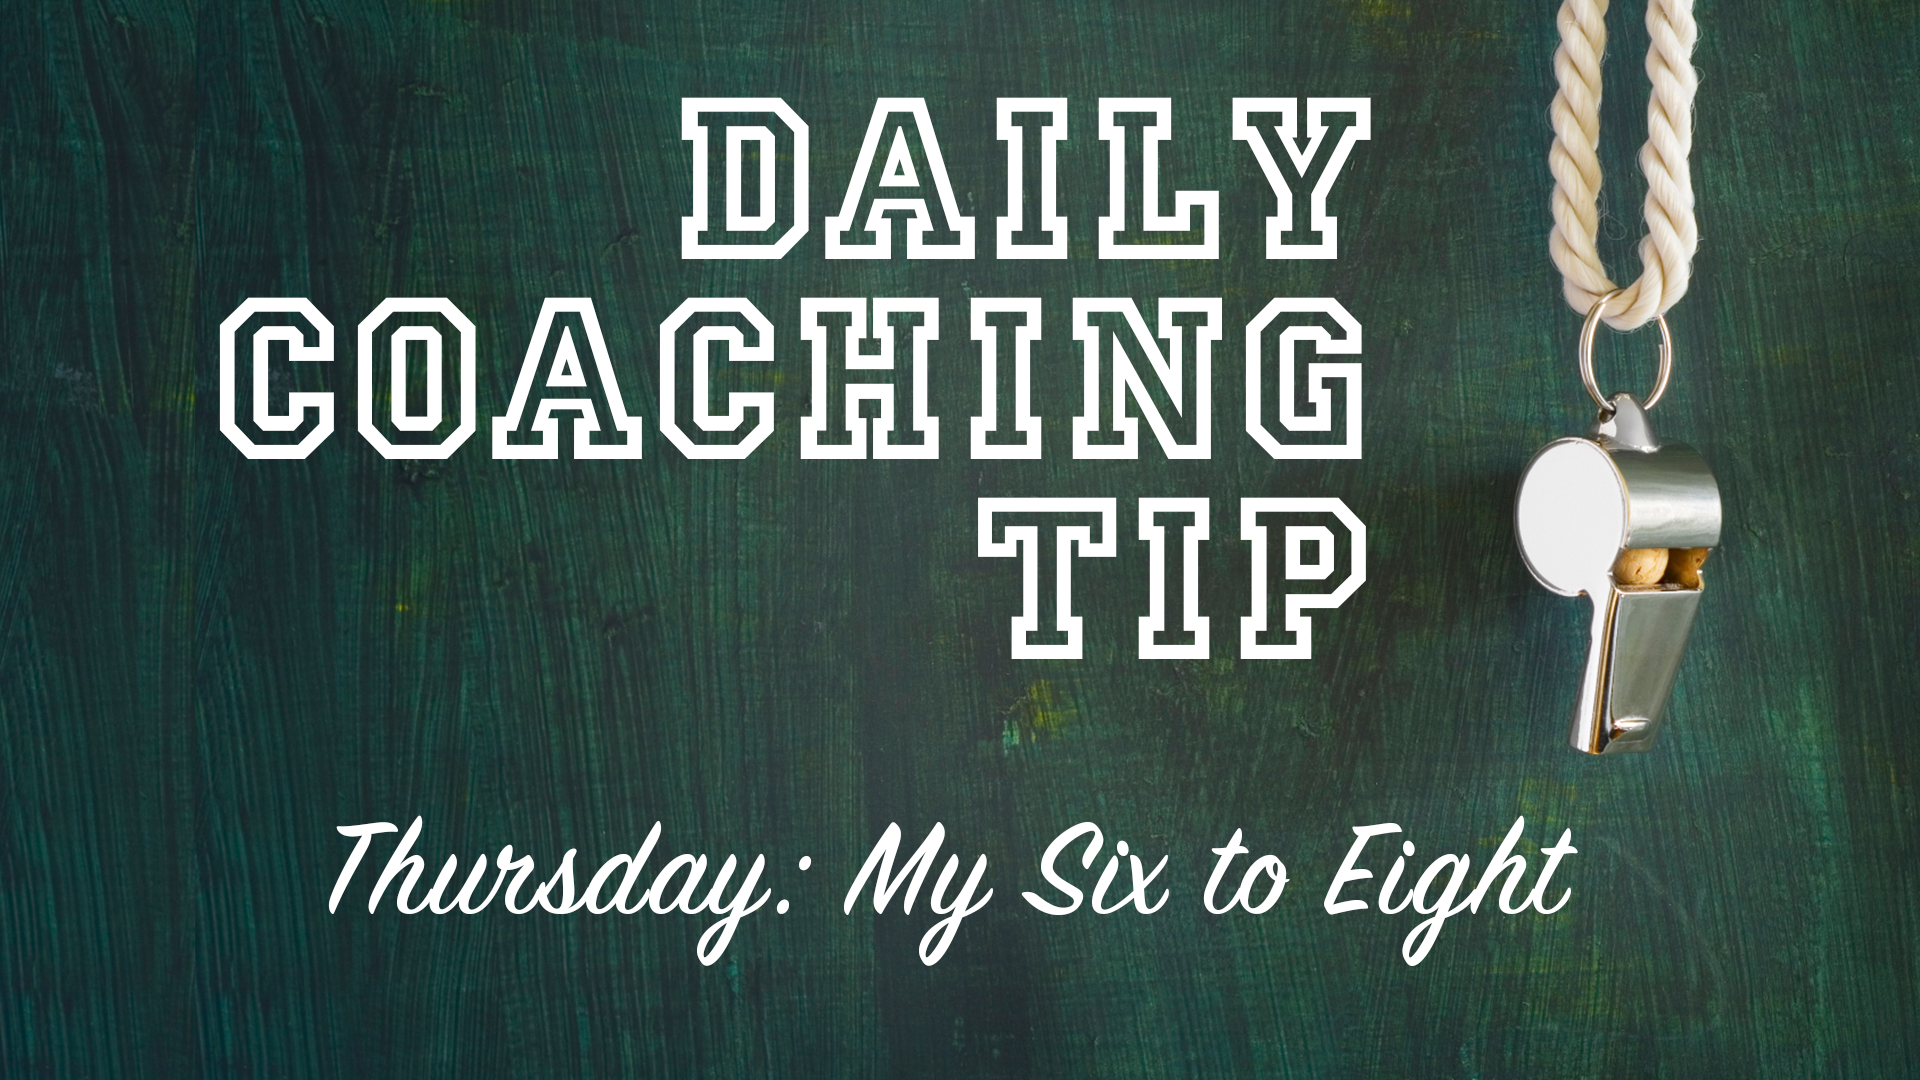 Daily Coaching Tip, Thursday, February 25, 2016